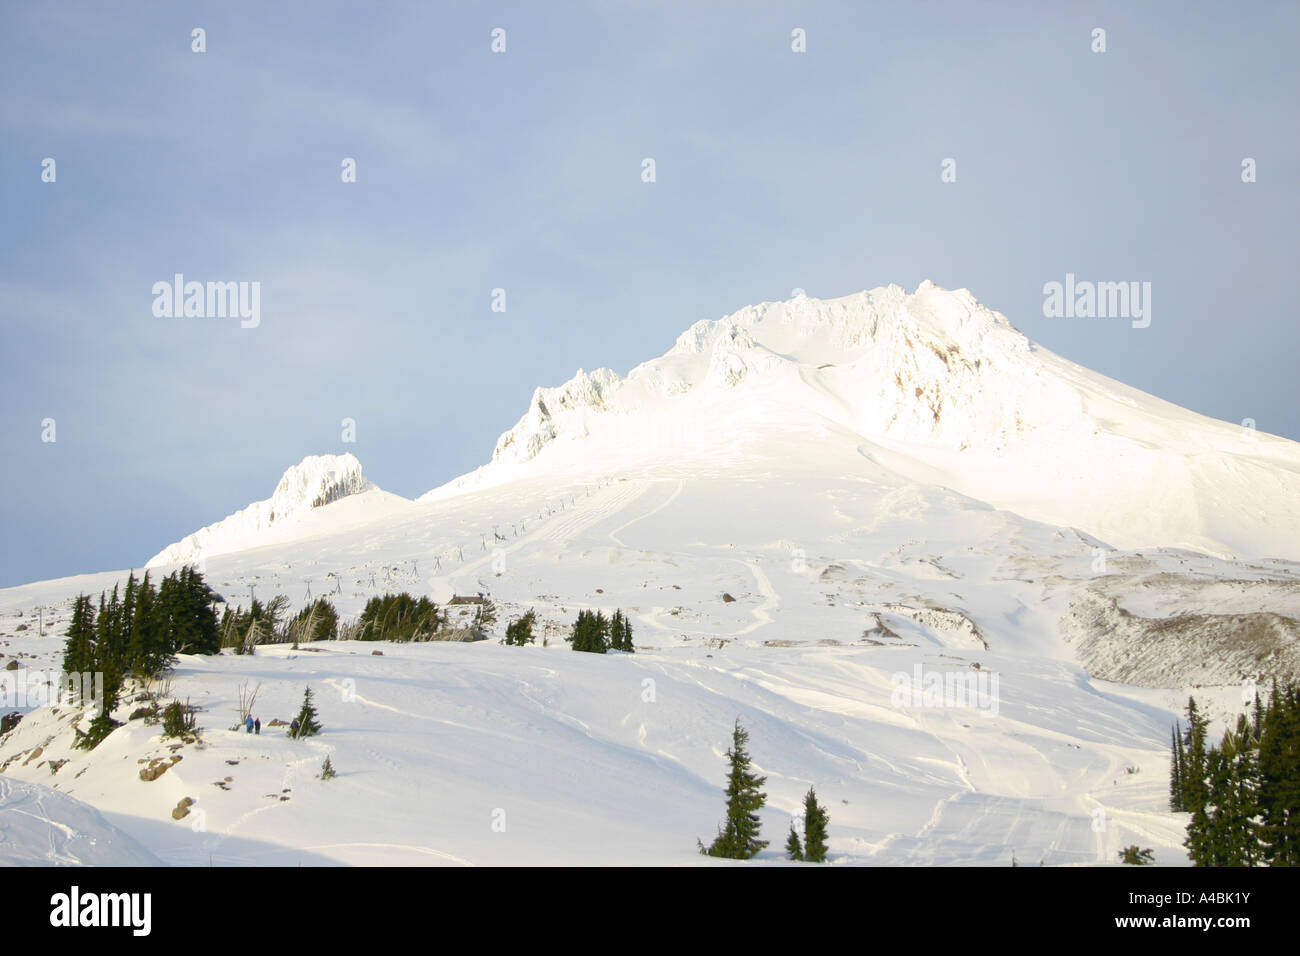 39,069.09708 snow covered Mount Hood -- 11,235 ft in the middle of Winter Paradise. - Stock Image